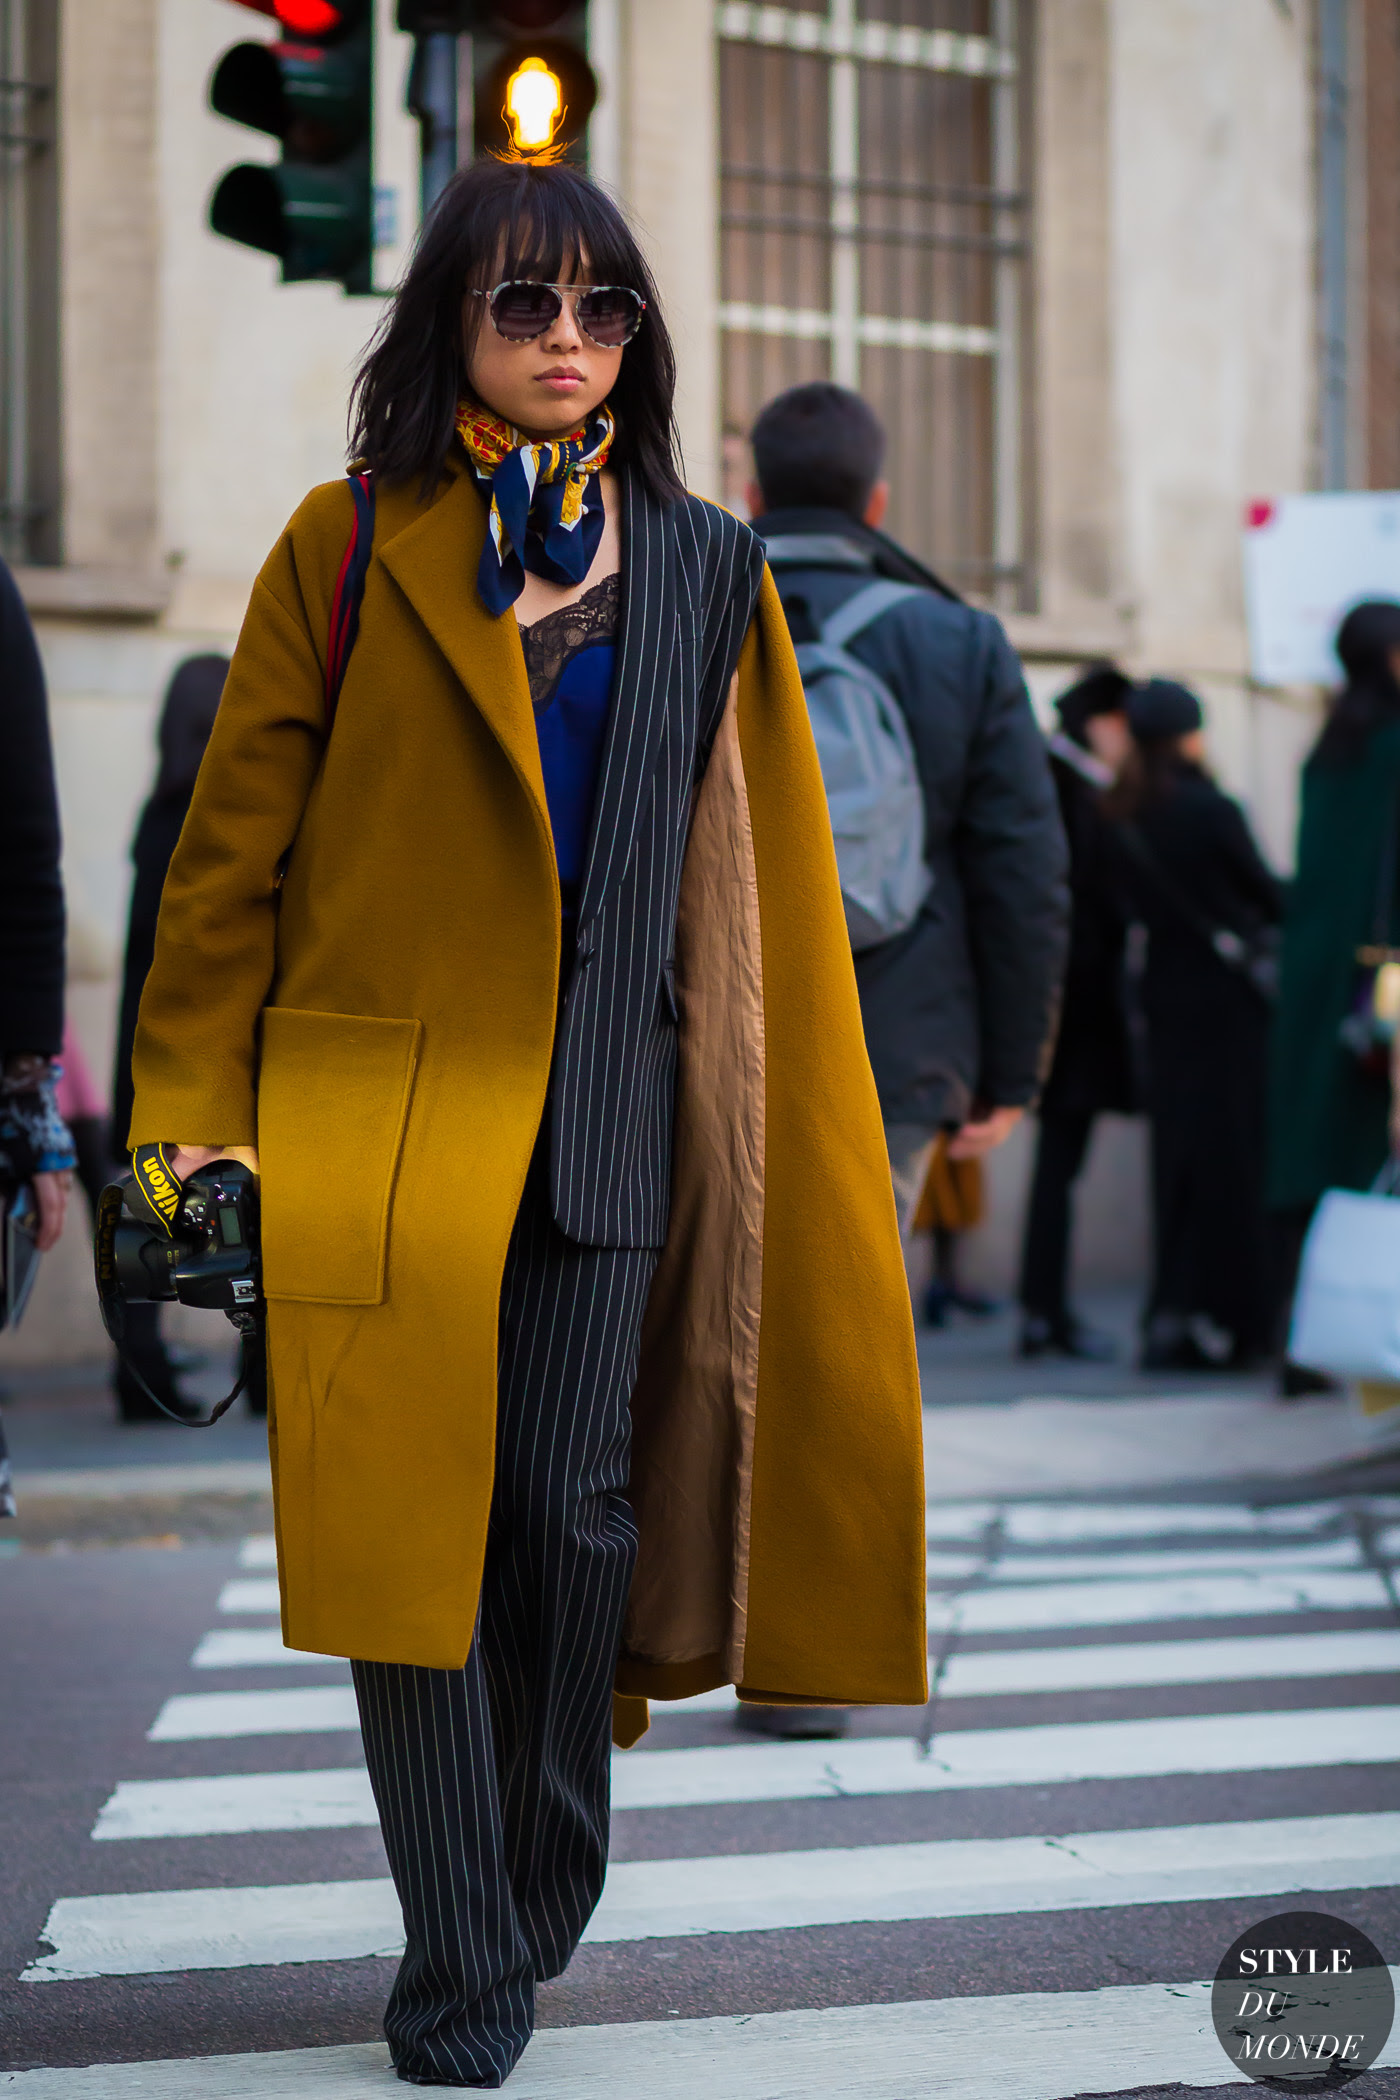 http://www.styledumonde.com/wp-content/uploads/2017/01/Margaret-Zhang-by-STYLEDUMONDE-Street-Style-Fashion-Photography0E2A6250-700x1050@2x.jpg